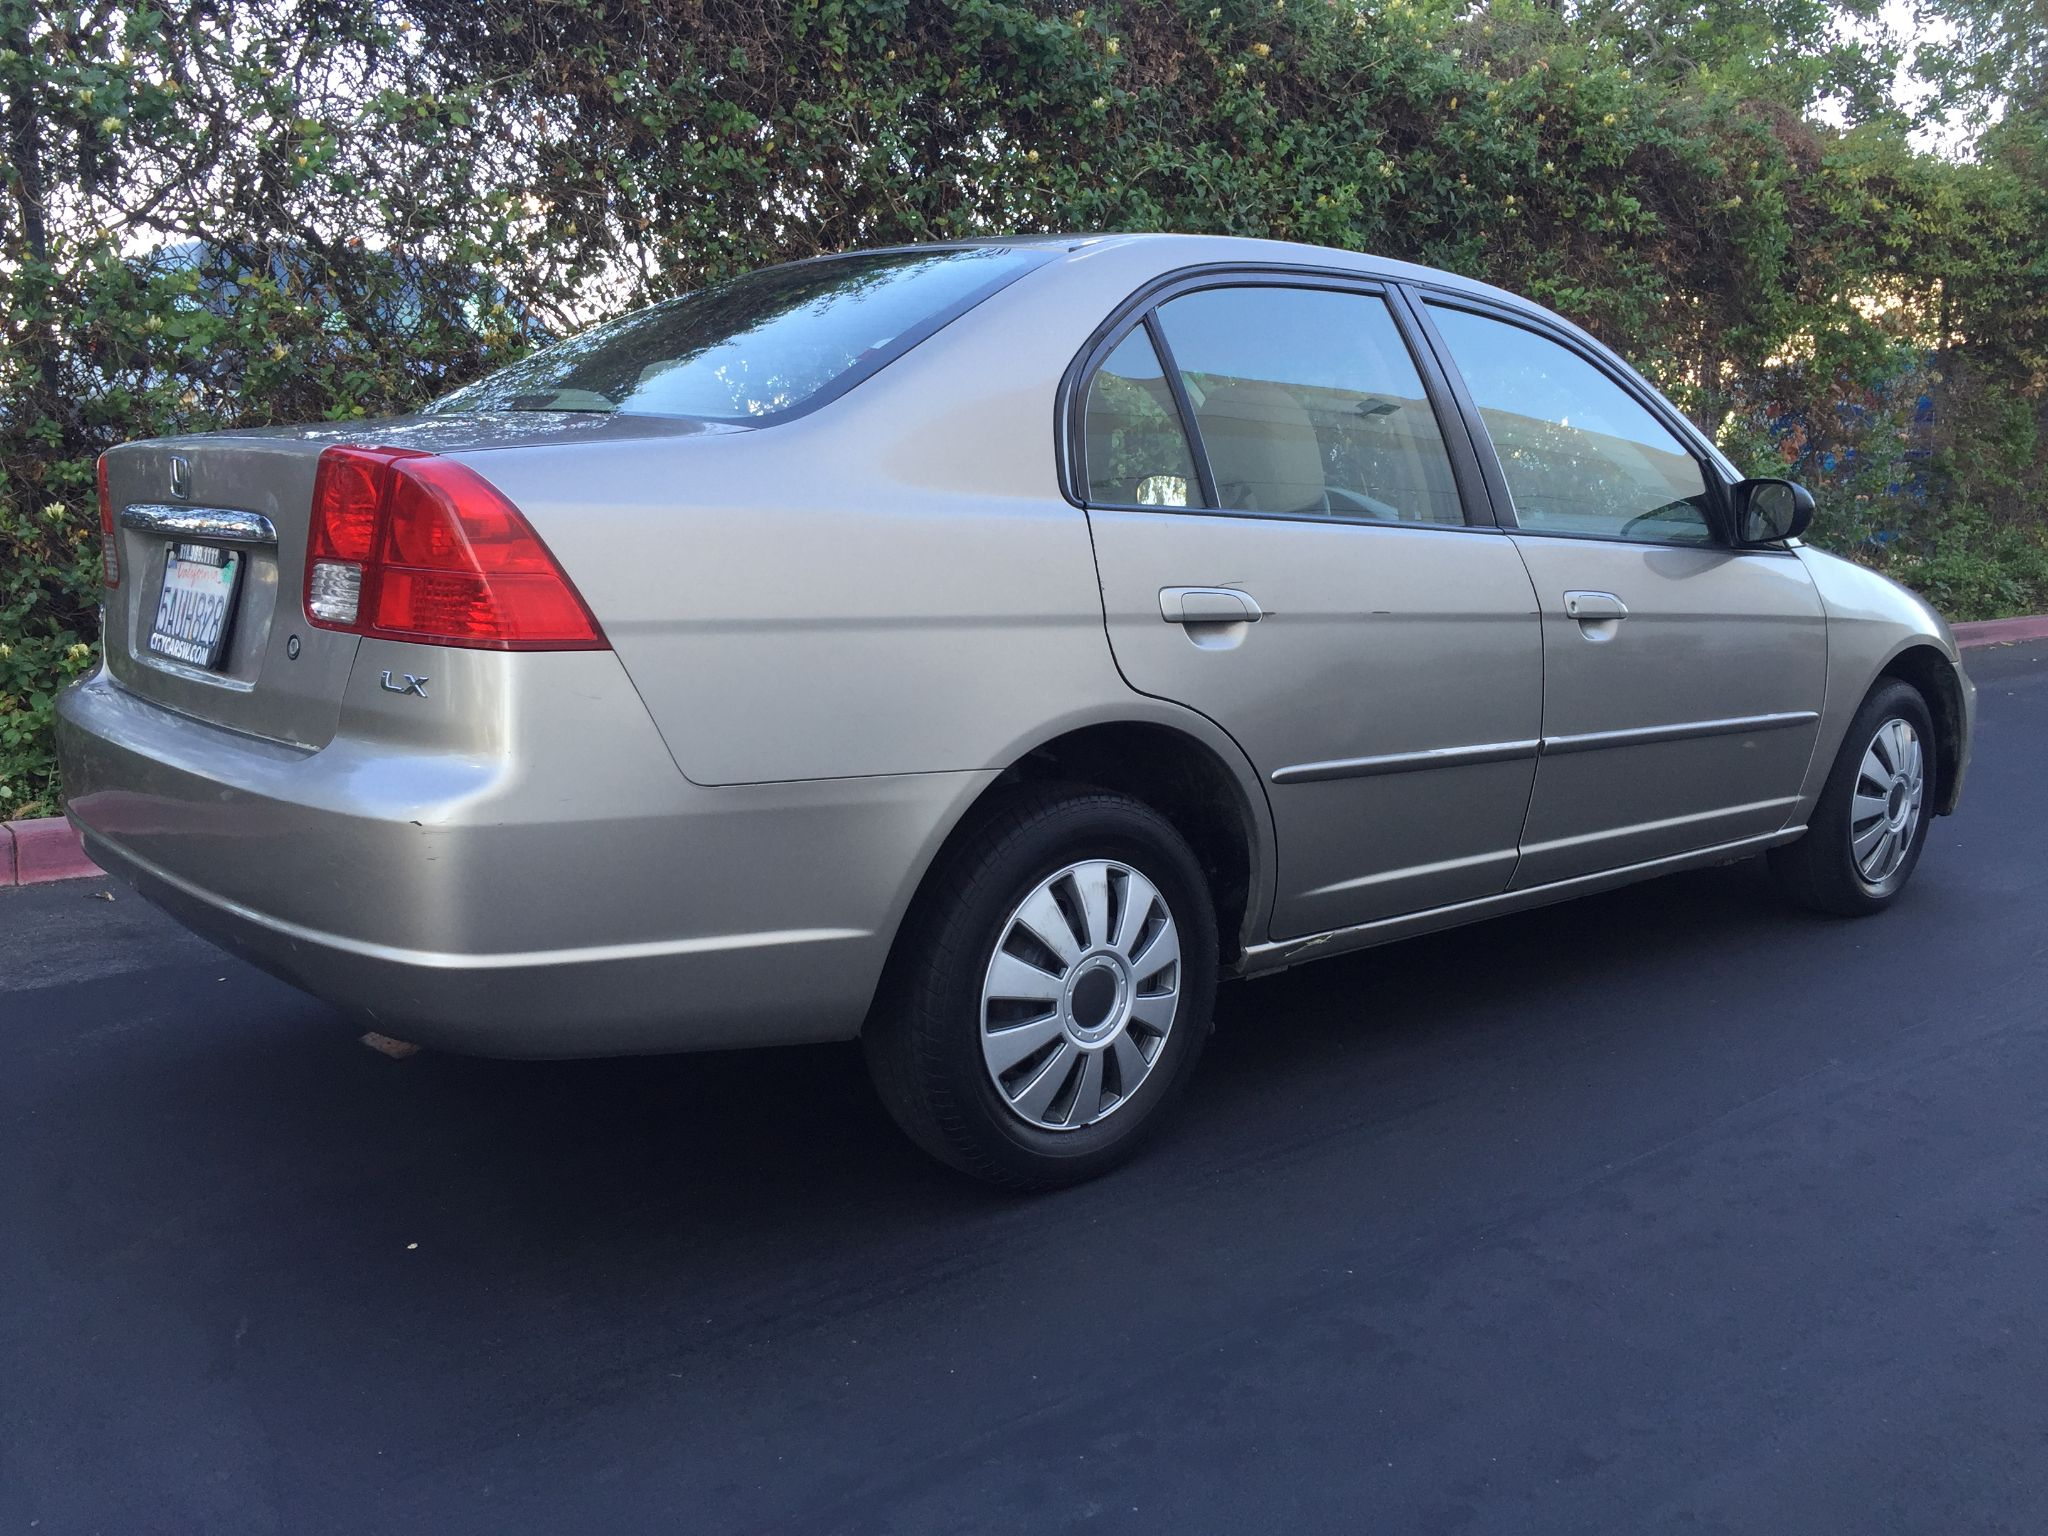 Estimate My Car Payment >> Used 2003 Honda Civic LX at City Cars Warehouse INC